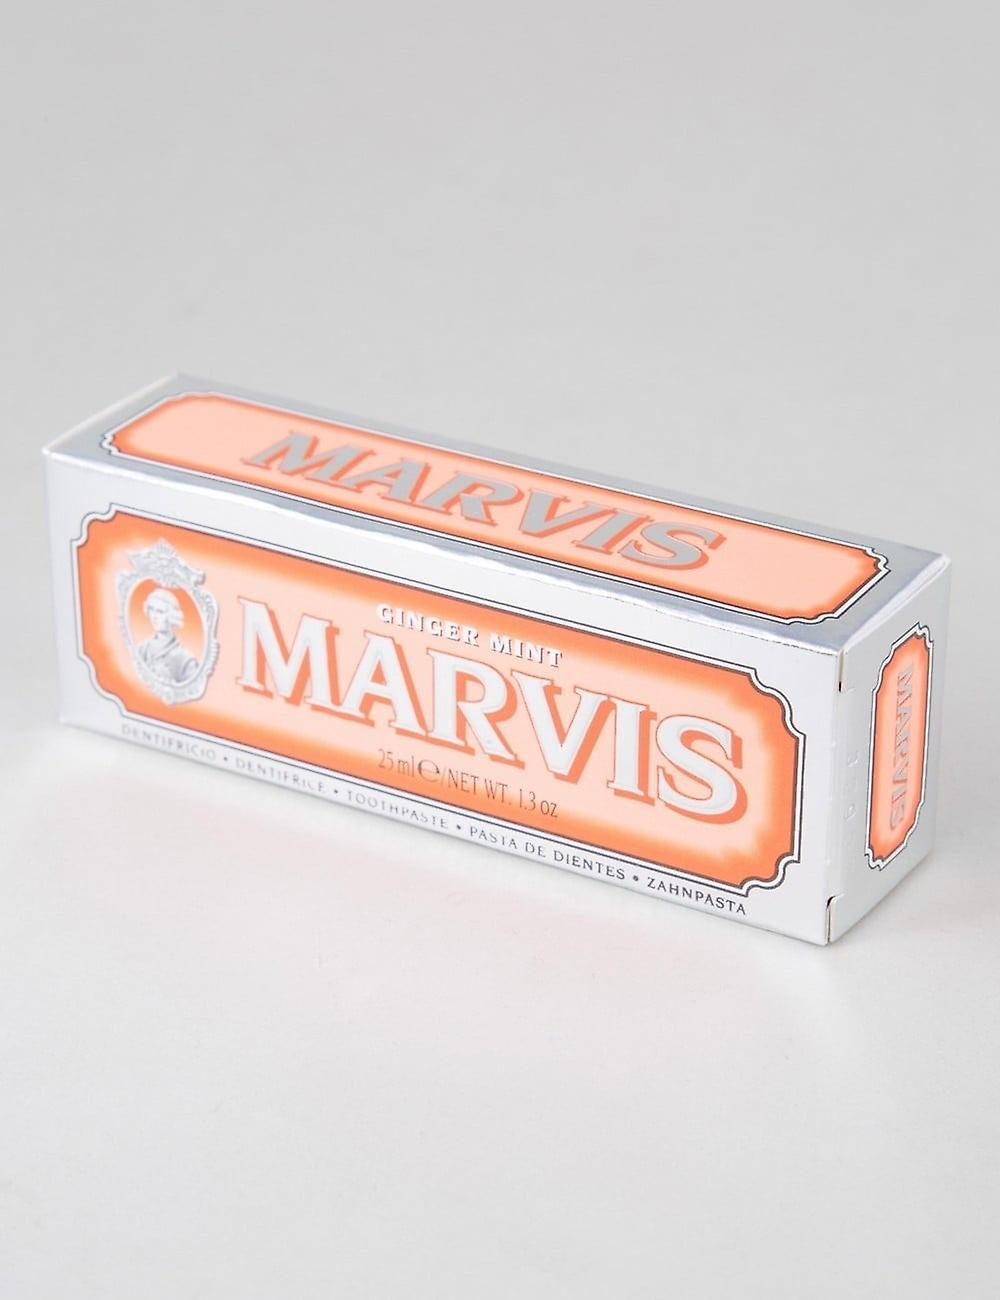 Marvis Ginger Mint - Travel Toothpaste (25ml)